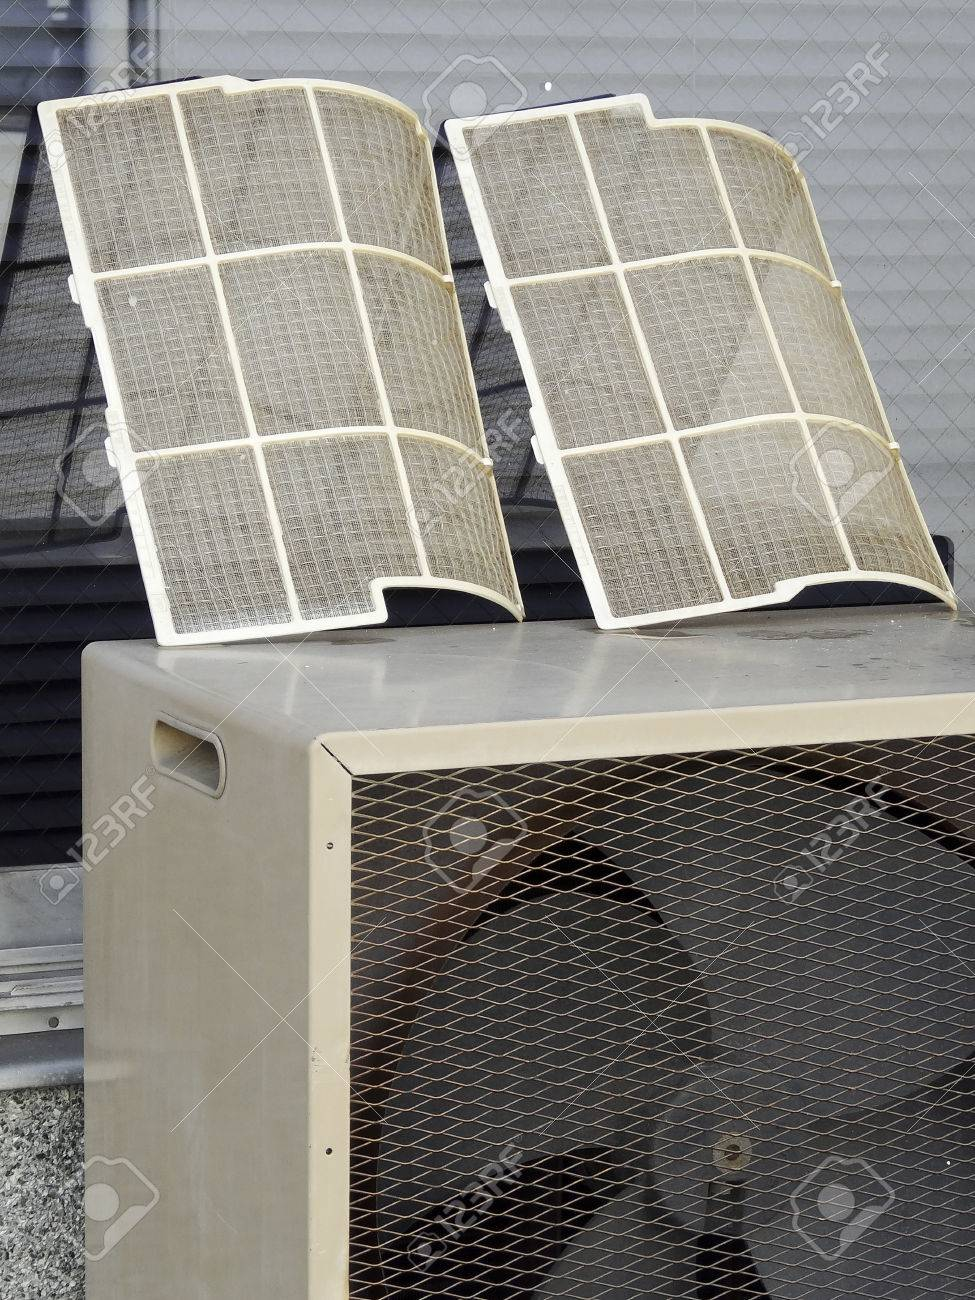 cleaning of air conditioning filters for home stock photo, picture